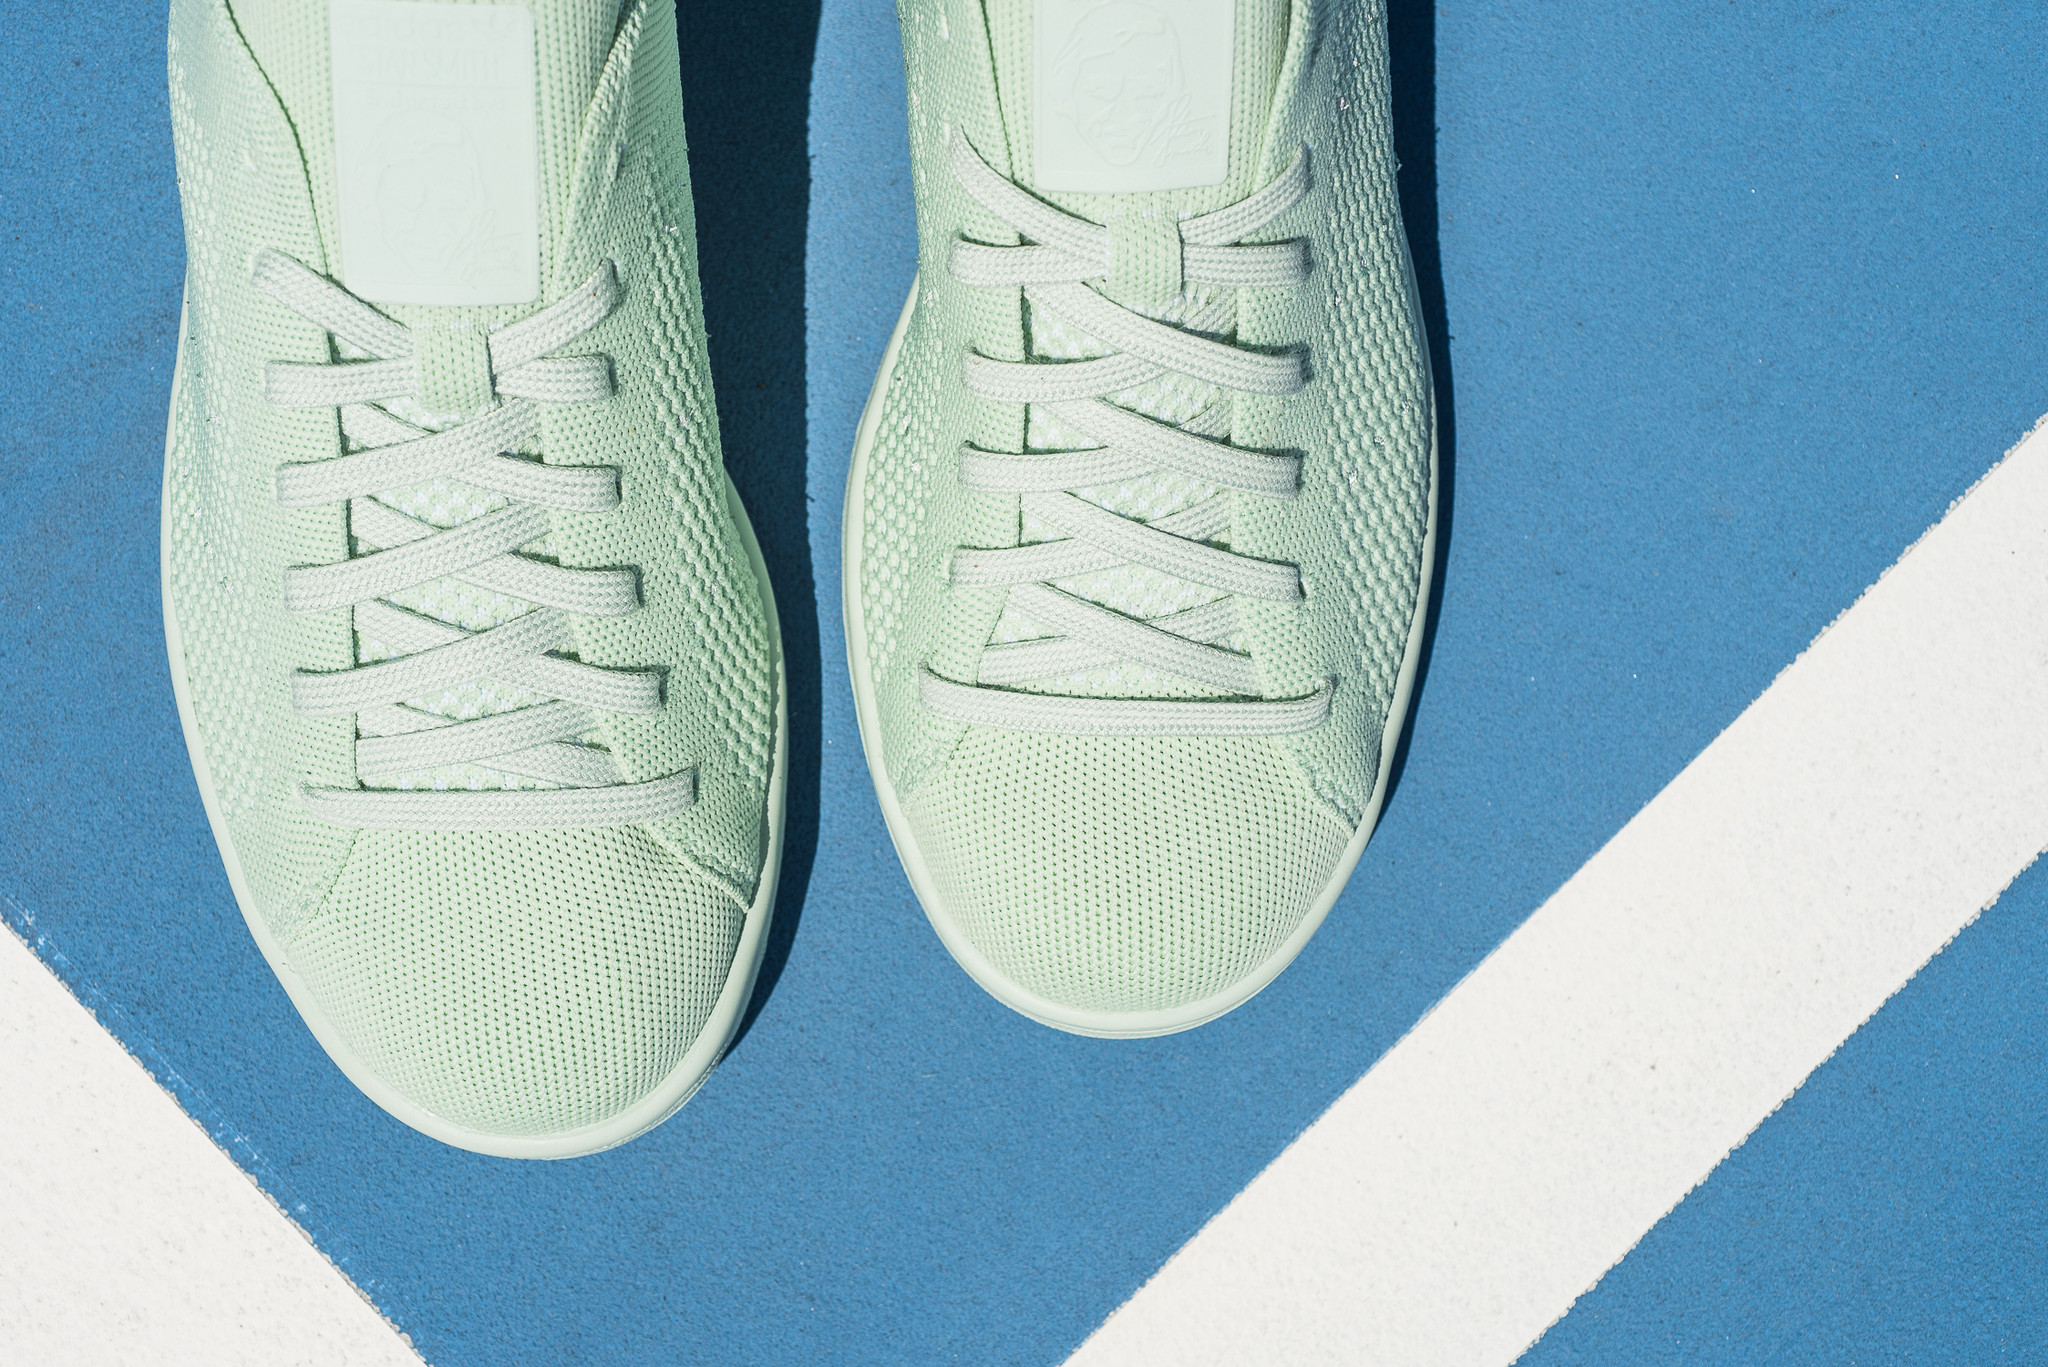 low priced 8f963 618f7 Summer Ready: The adidas Originals Stan Smith Primeknit ...